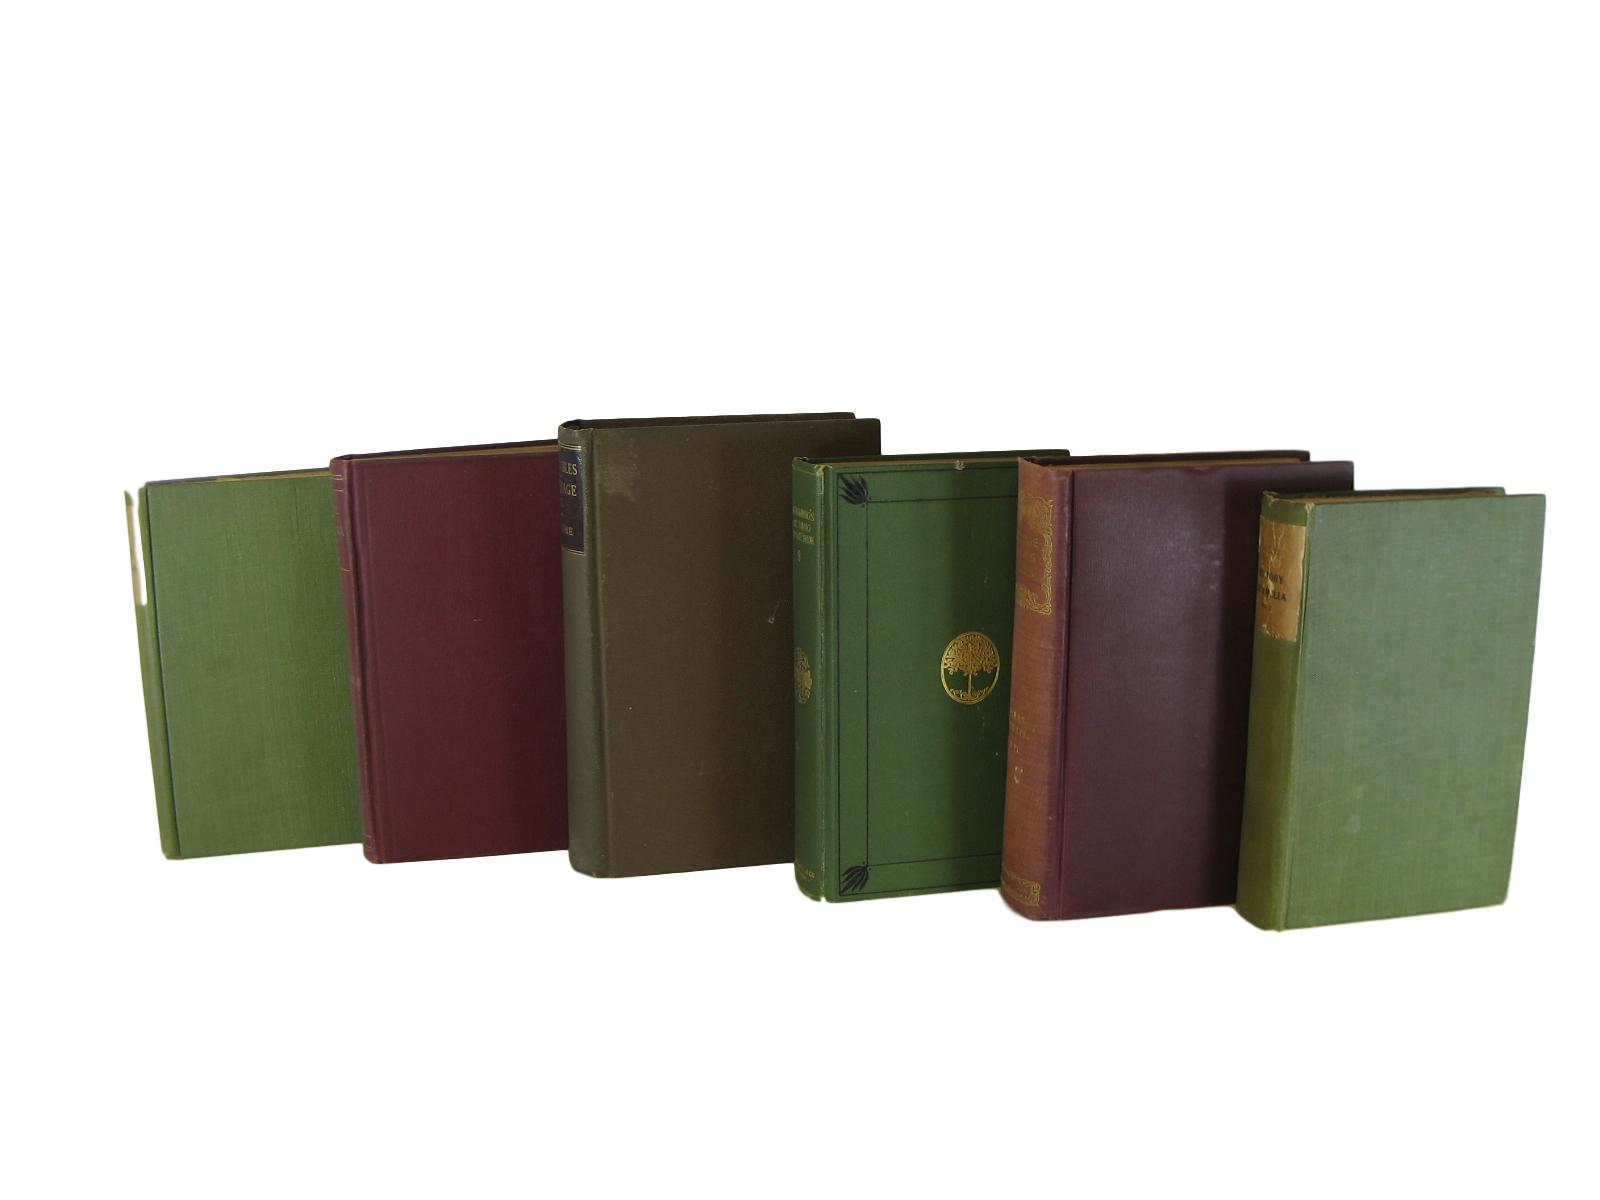 Rustic Chic Decorative  Book Stack in Greens and Red, S/6